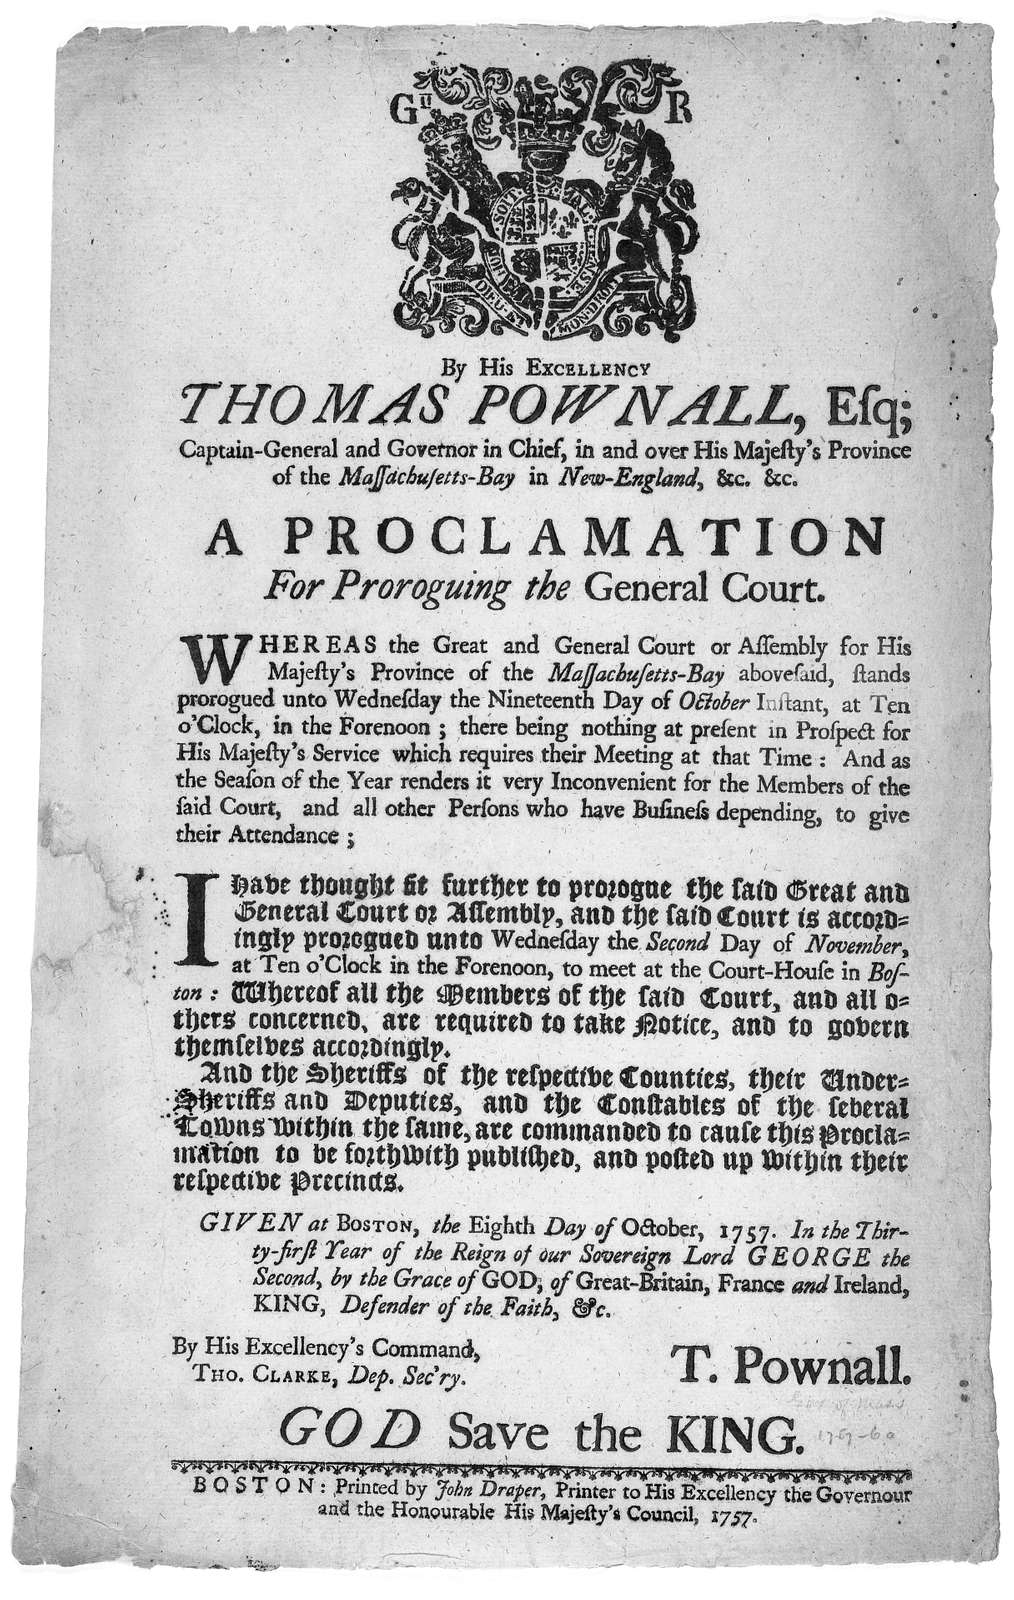 By His Excellency, Thomas Pownall, Esq; Captain-general and governor in chief, in and over His Majesty's province of the Massachusetts-Bay in New-England. &c. &c. a proclamation for proroguing the general court … unto Wednesday the second day of